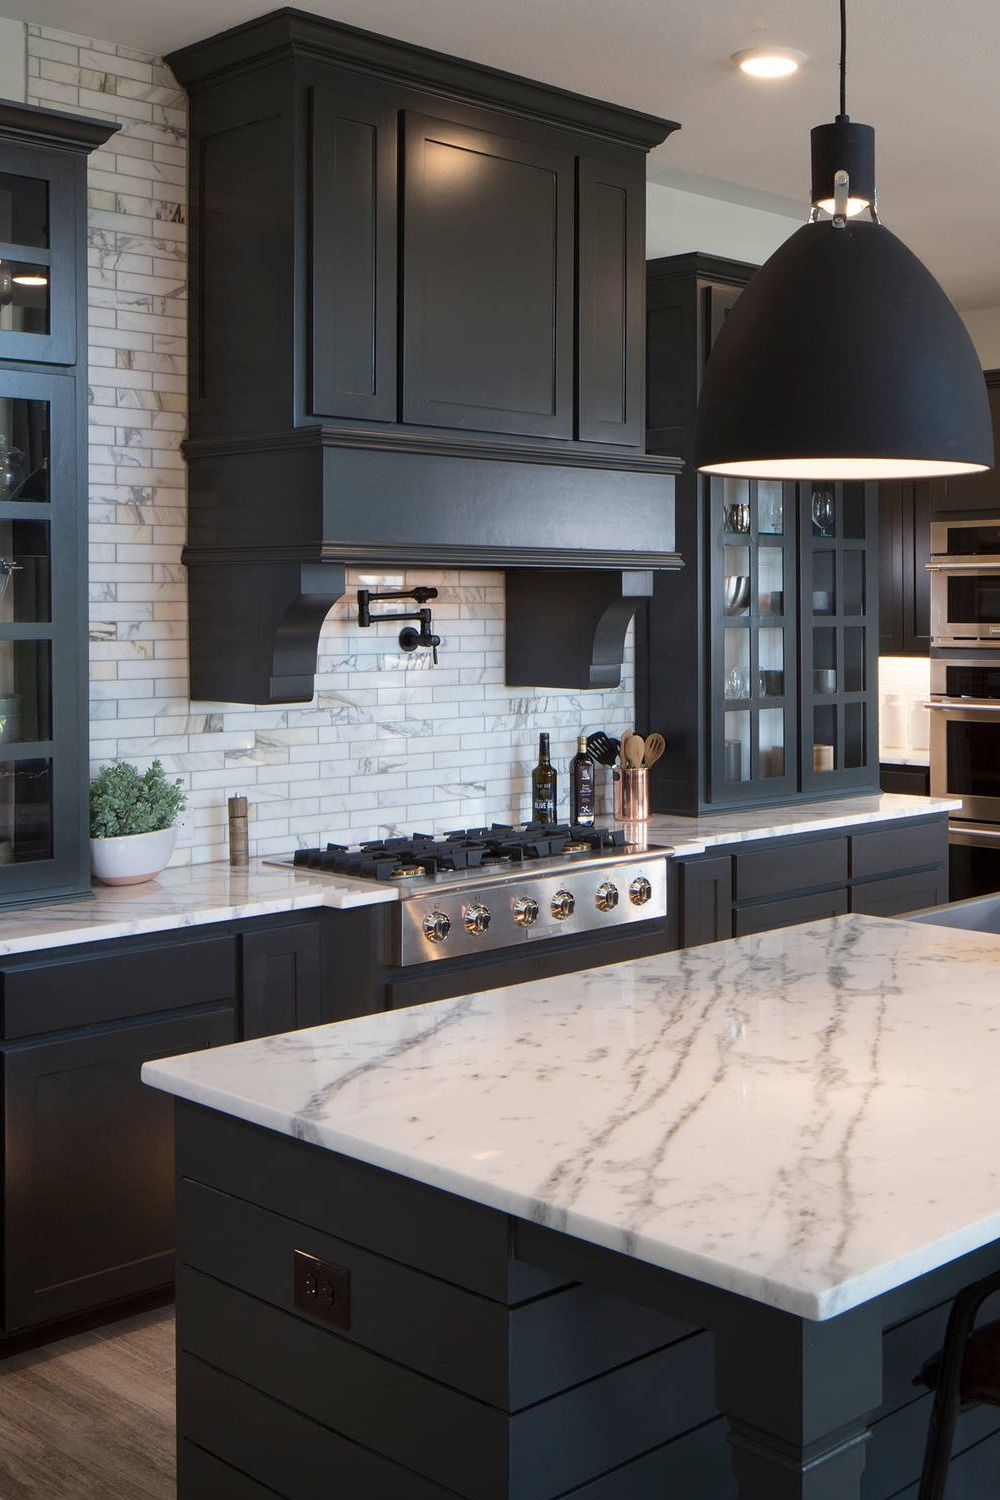 Charcoal Gray Kitchen Cabinets ( Dark or Light?)